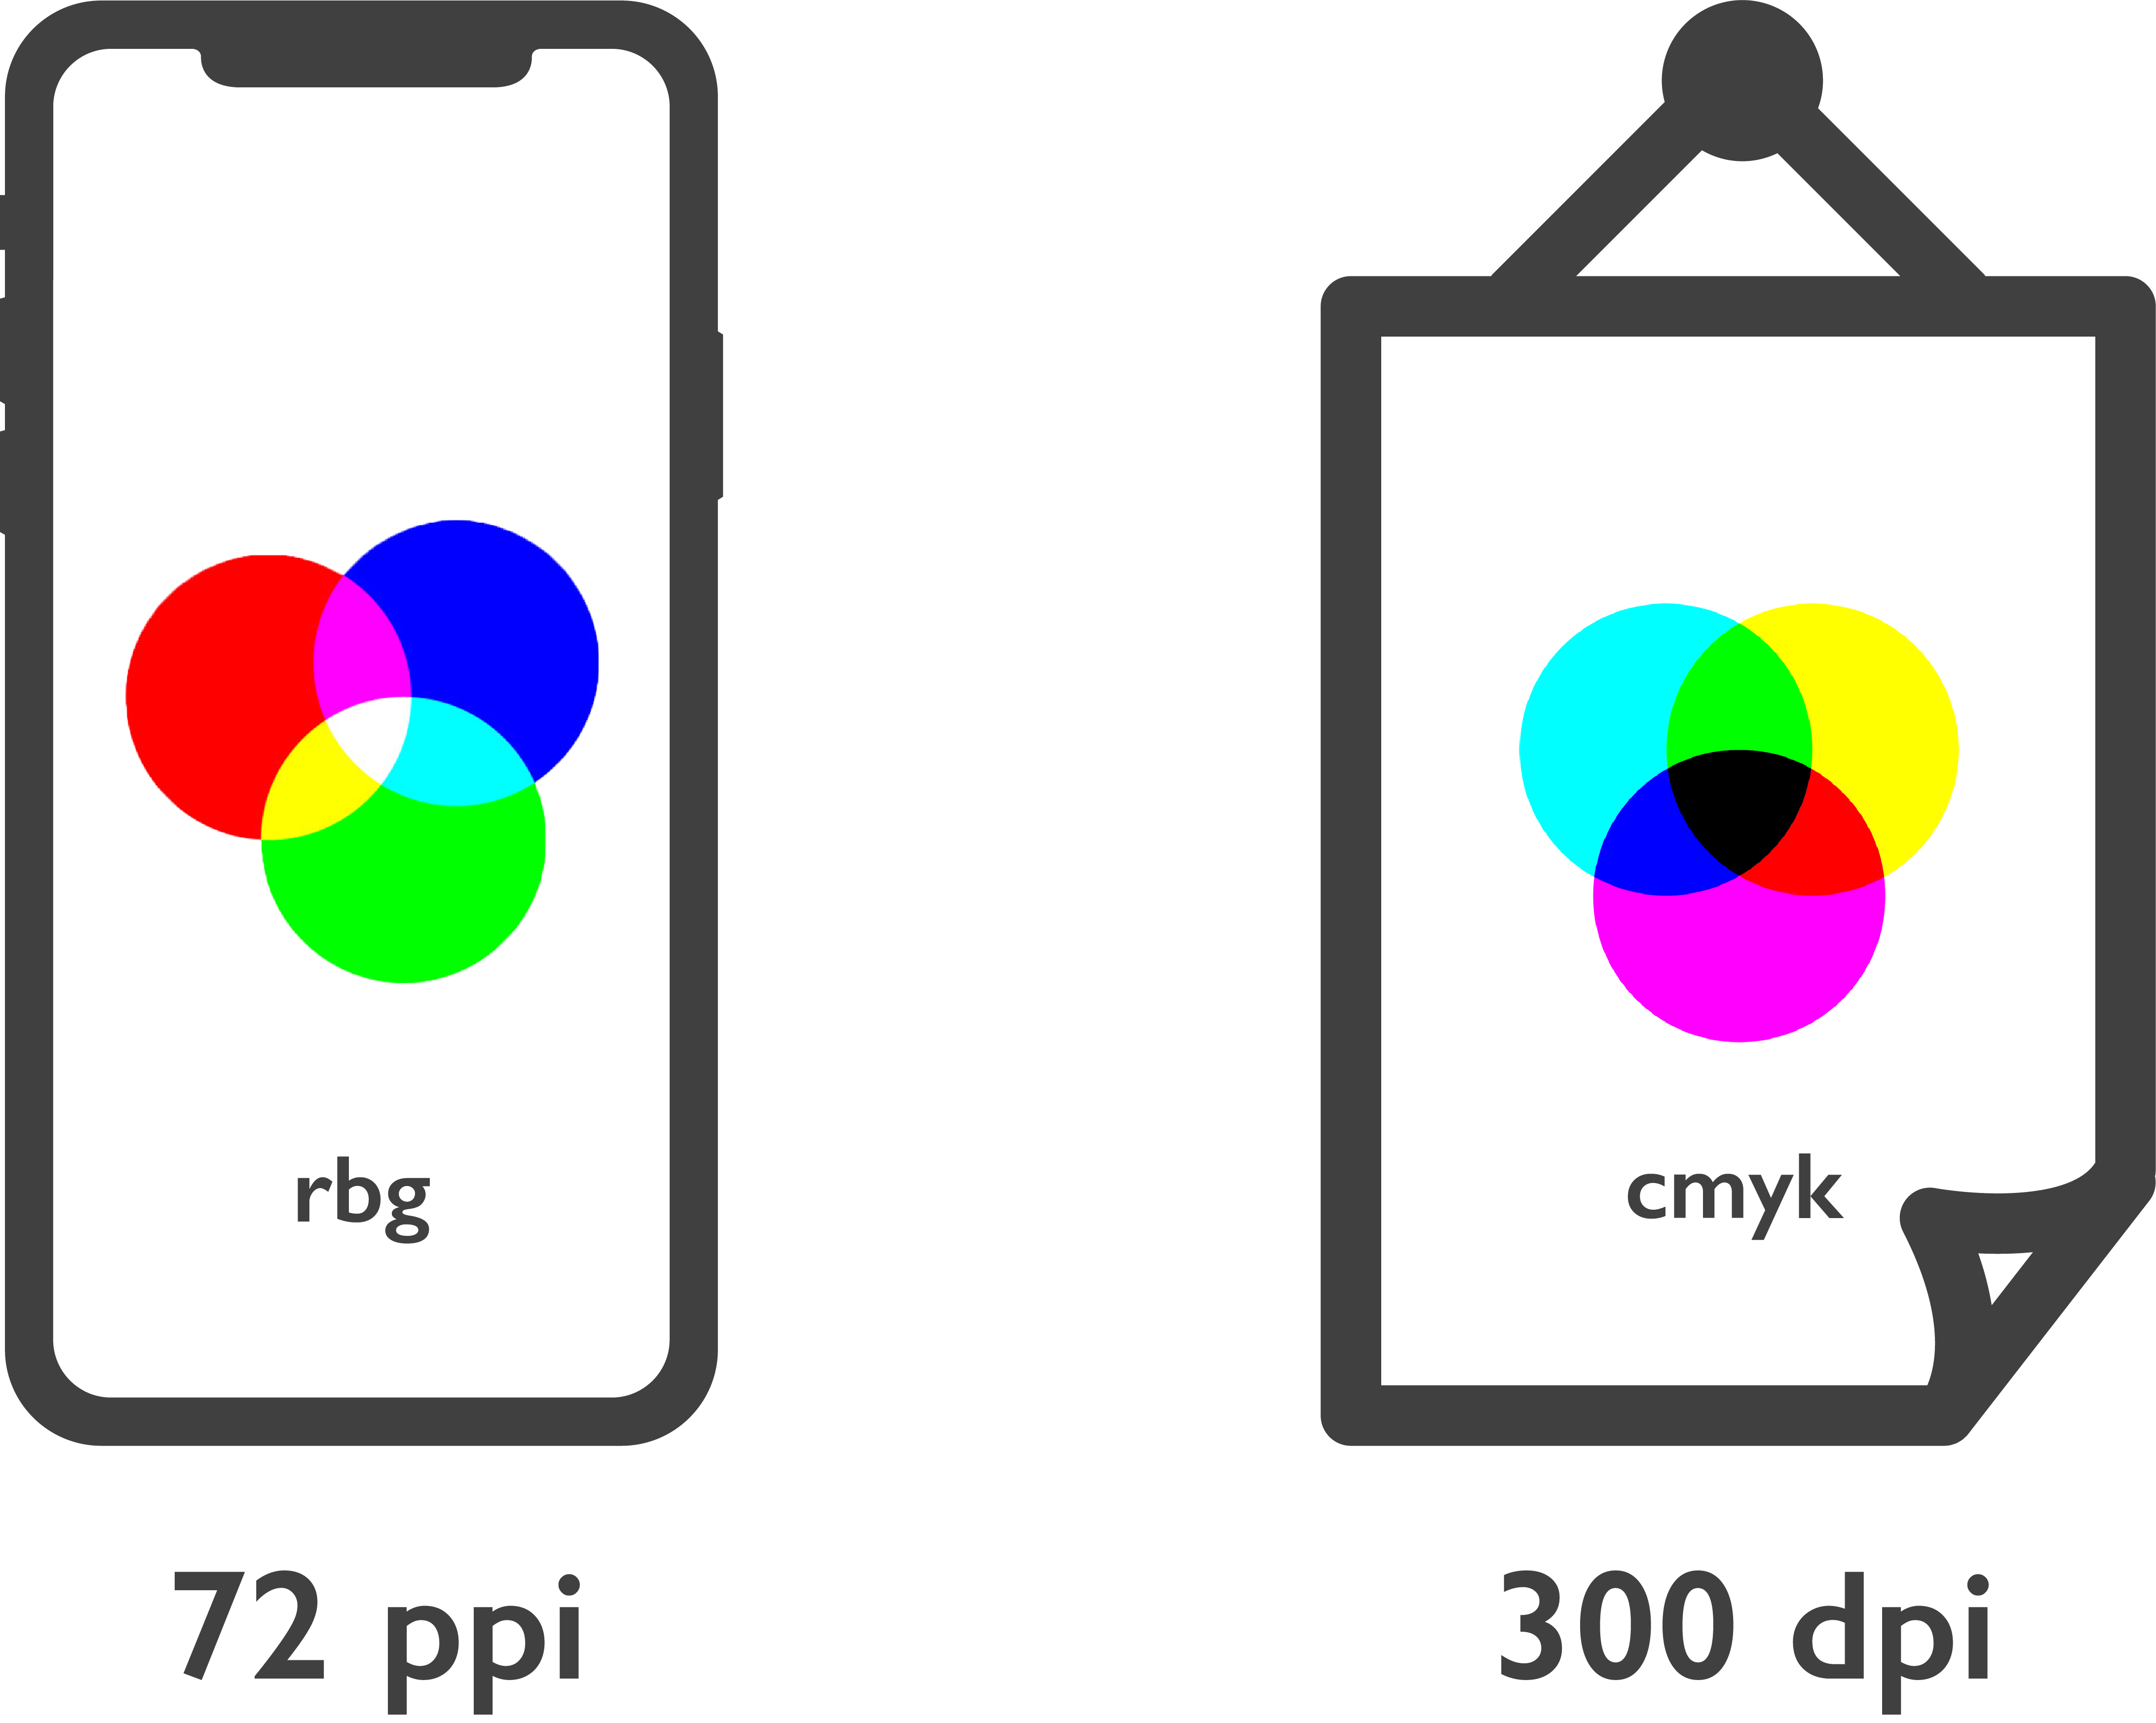 final image cmyk vs rgb